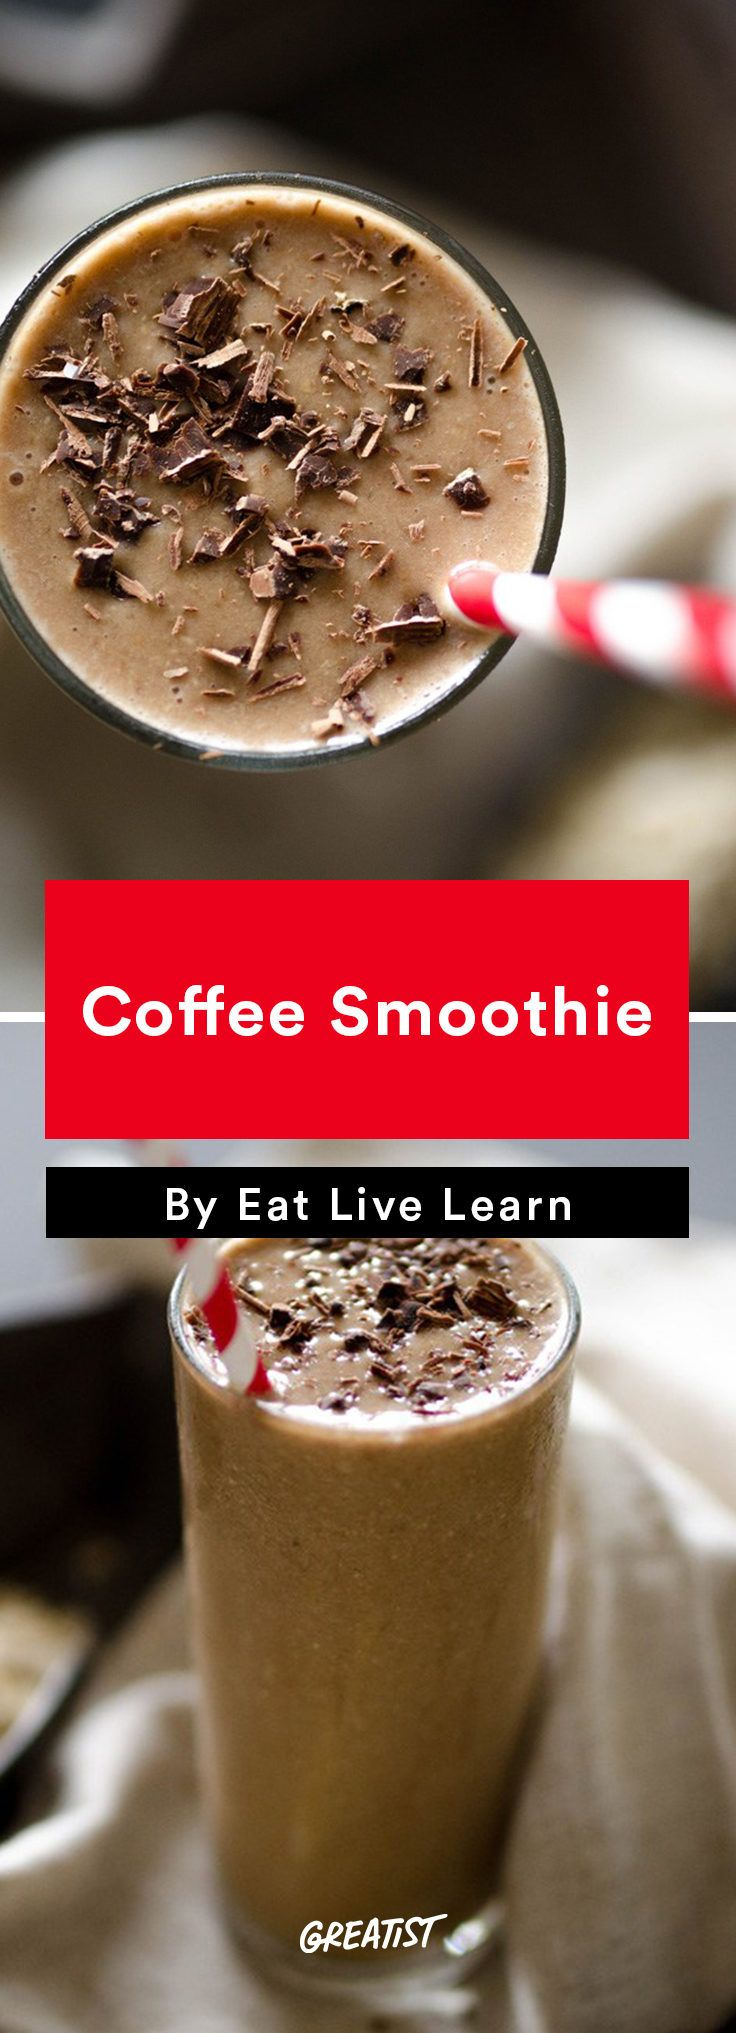 Because there's always one cup left in the pot. #easy #coffee #recipes https://greatist.com/eat/coffee-recipes-that-use-your-leftover-cup